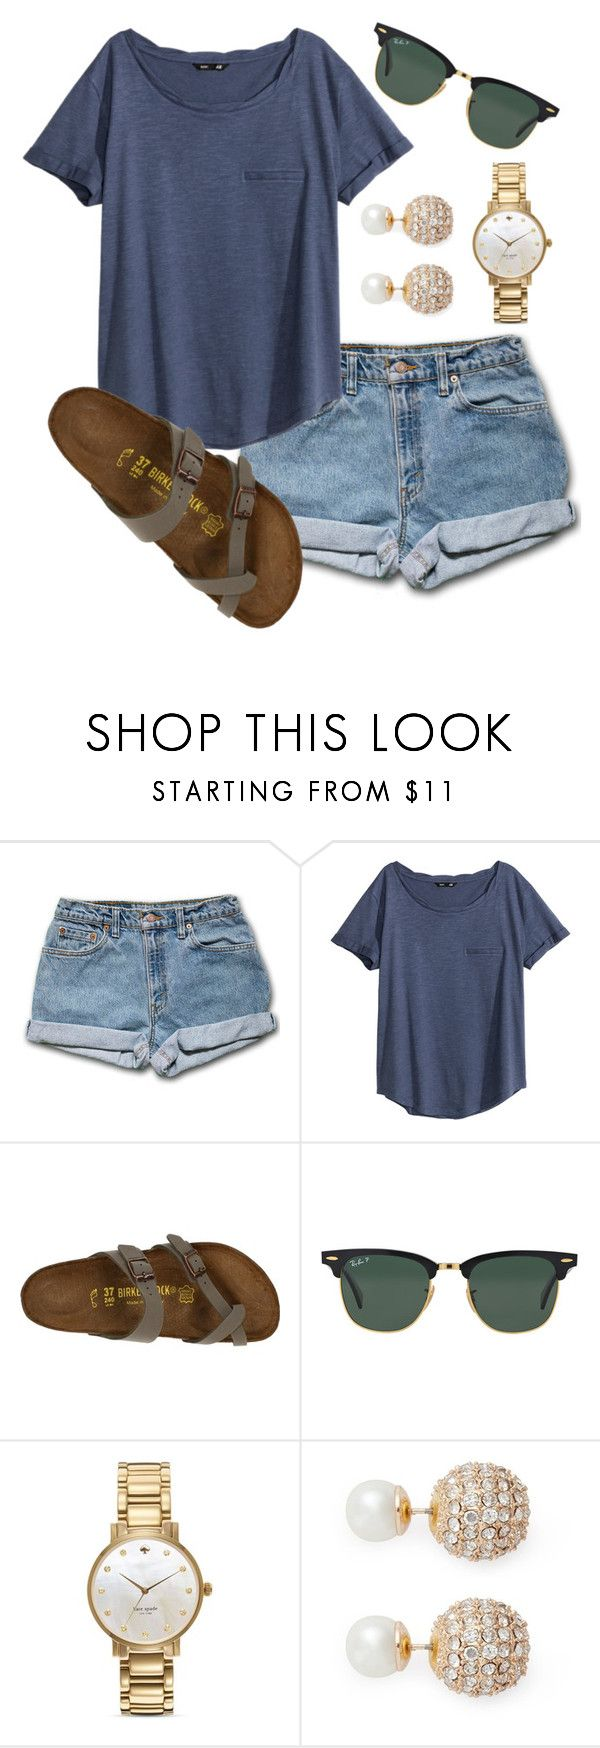 """""We should love, not fall in love because everything that falls gets broken"" - Taylor Swift"" by morgan-deanna ❤ liked on Polyvore featuring H&M, Birkenstock, Ray-Ban, Kate Spade and Kenneth Jay Lane"